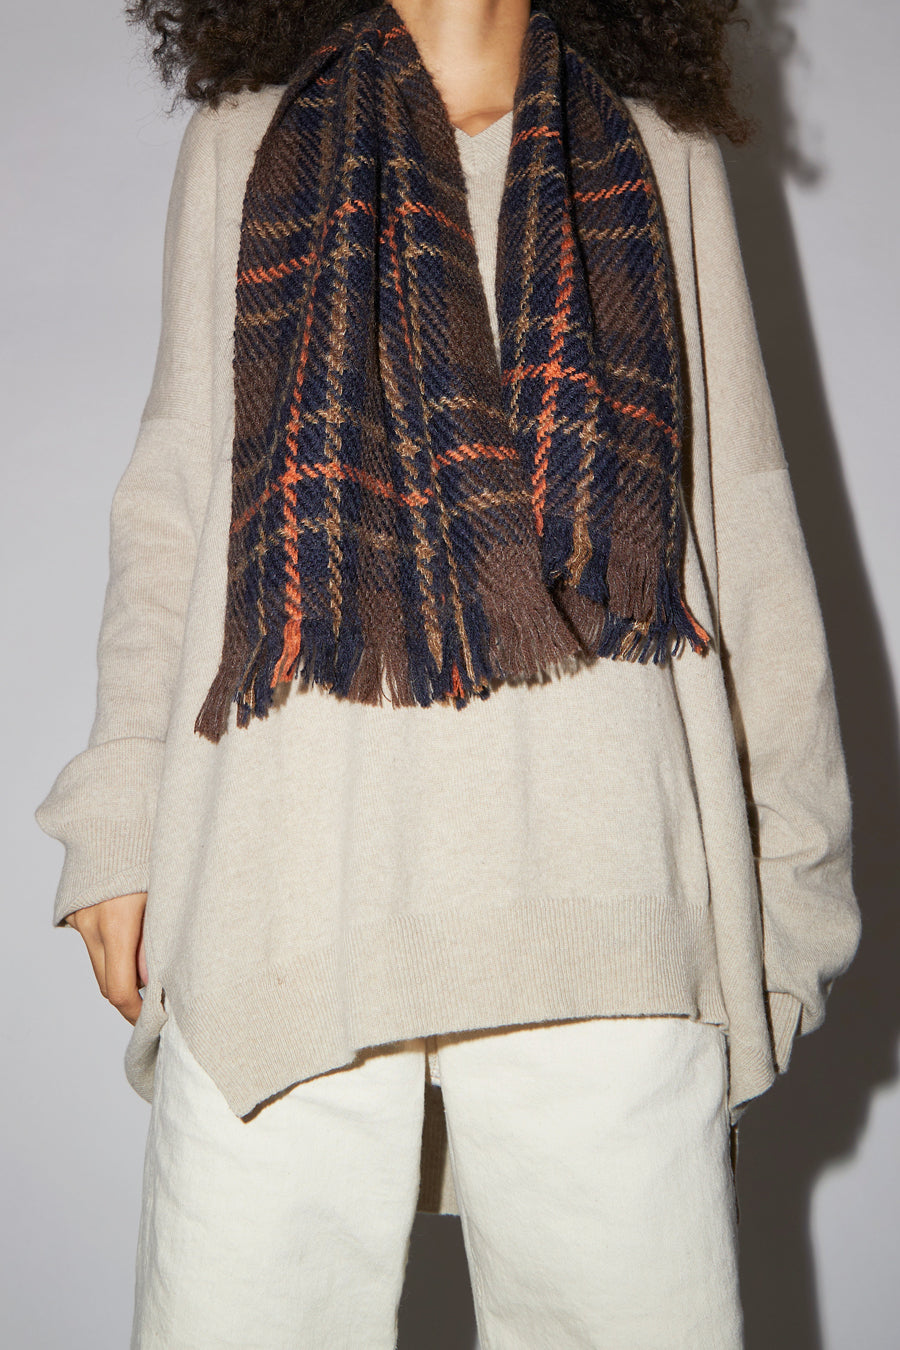 Maria La Rosa Wool and Mohair Short Scarf in Navy and Chestnut